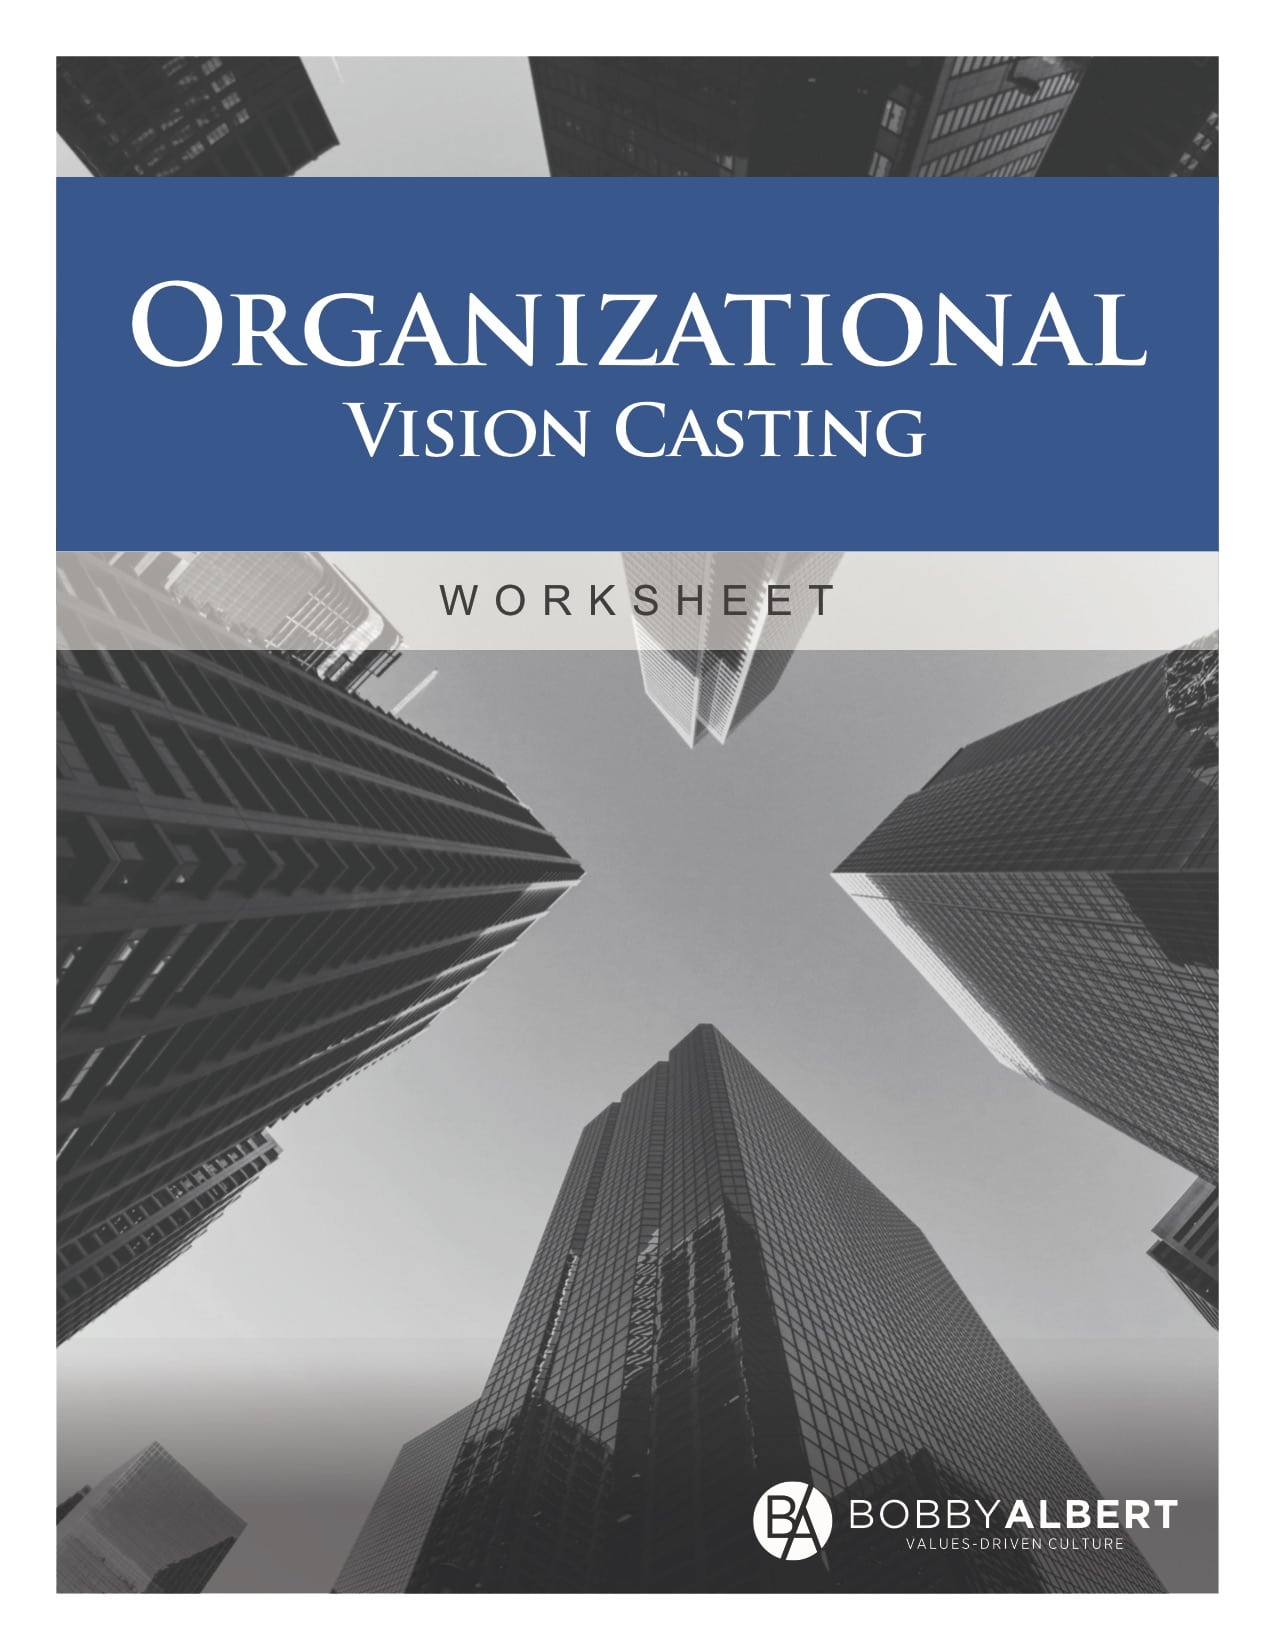 Organizational Vision Casting Worksheet